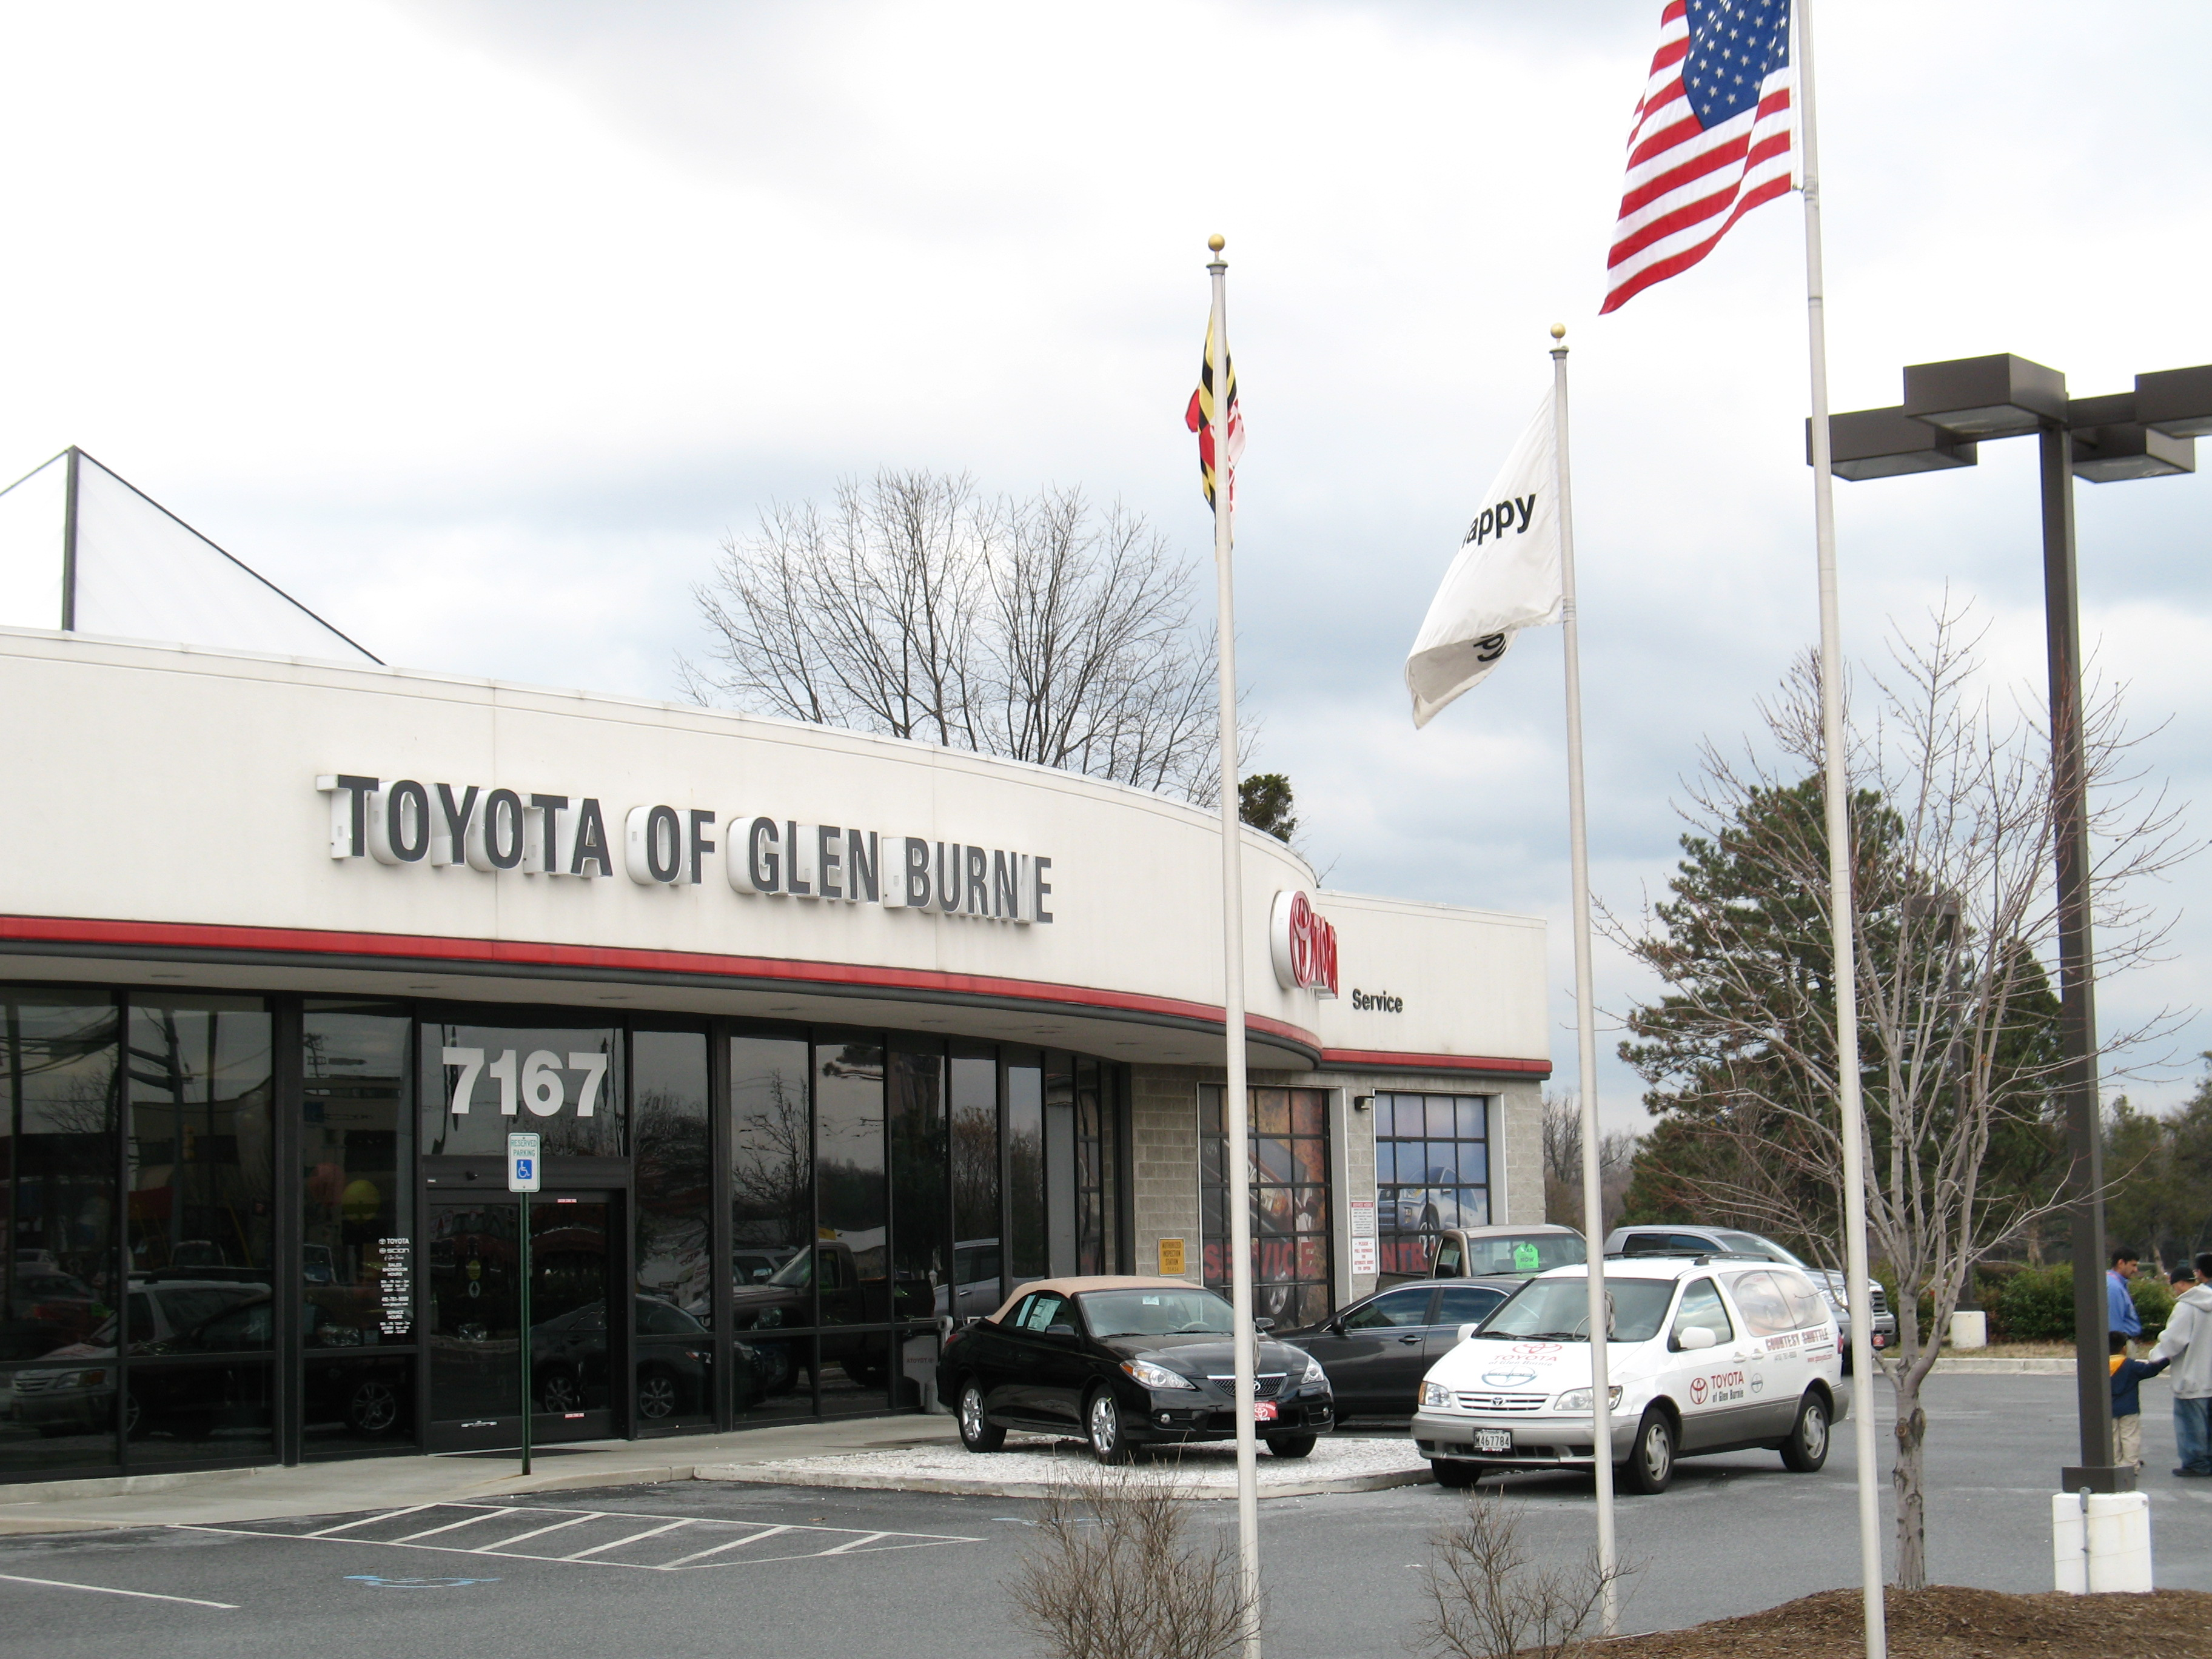 Brownu0027s Toyota Of Glen Burnie 7167 Ritchie HWY, Glen Burnie, MD 21061    YP.com